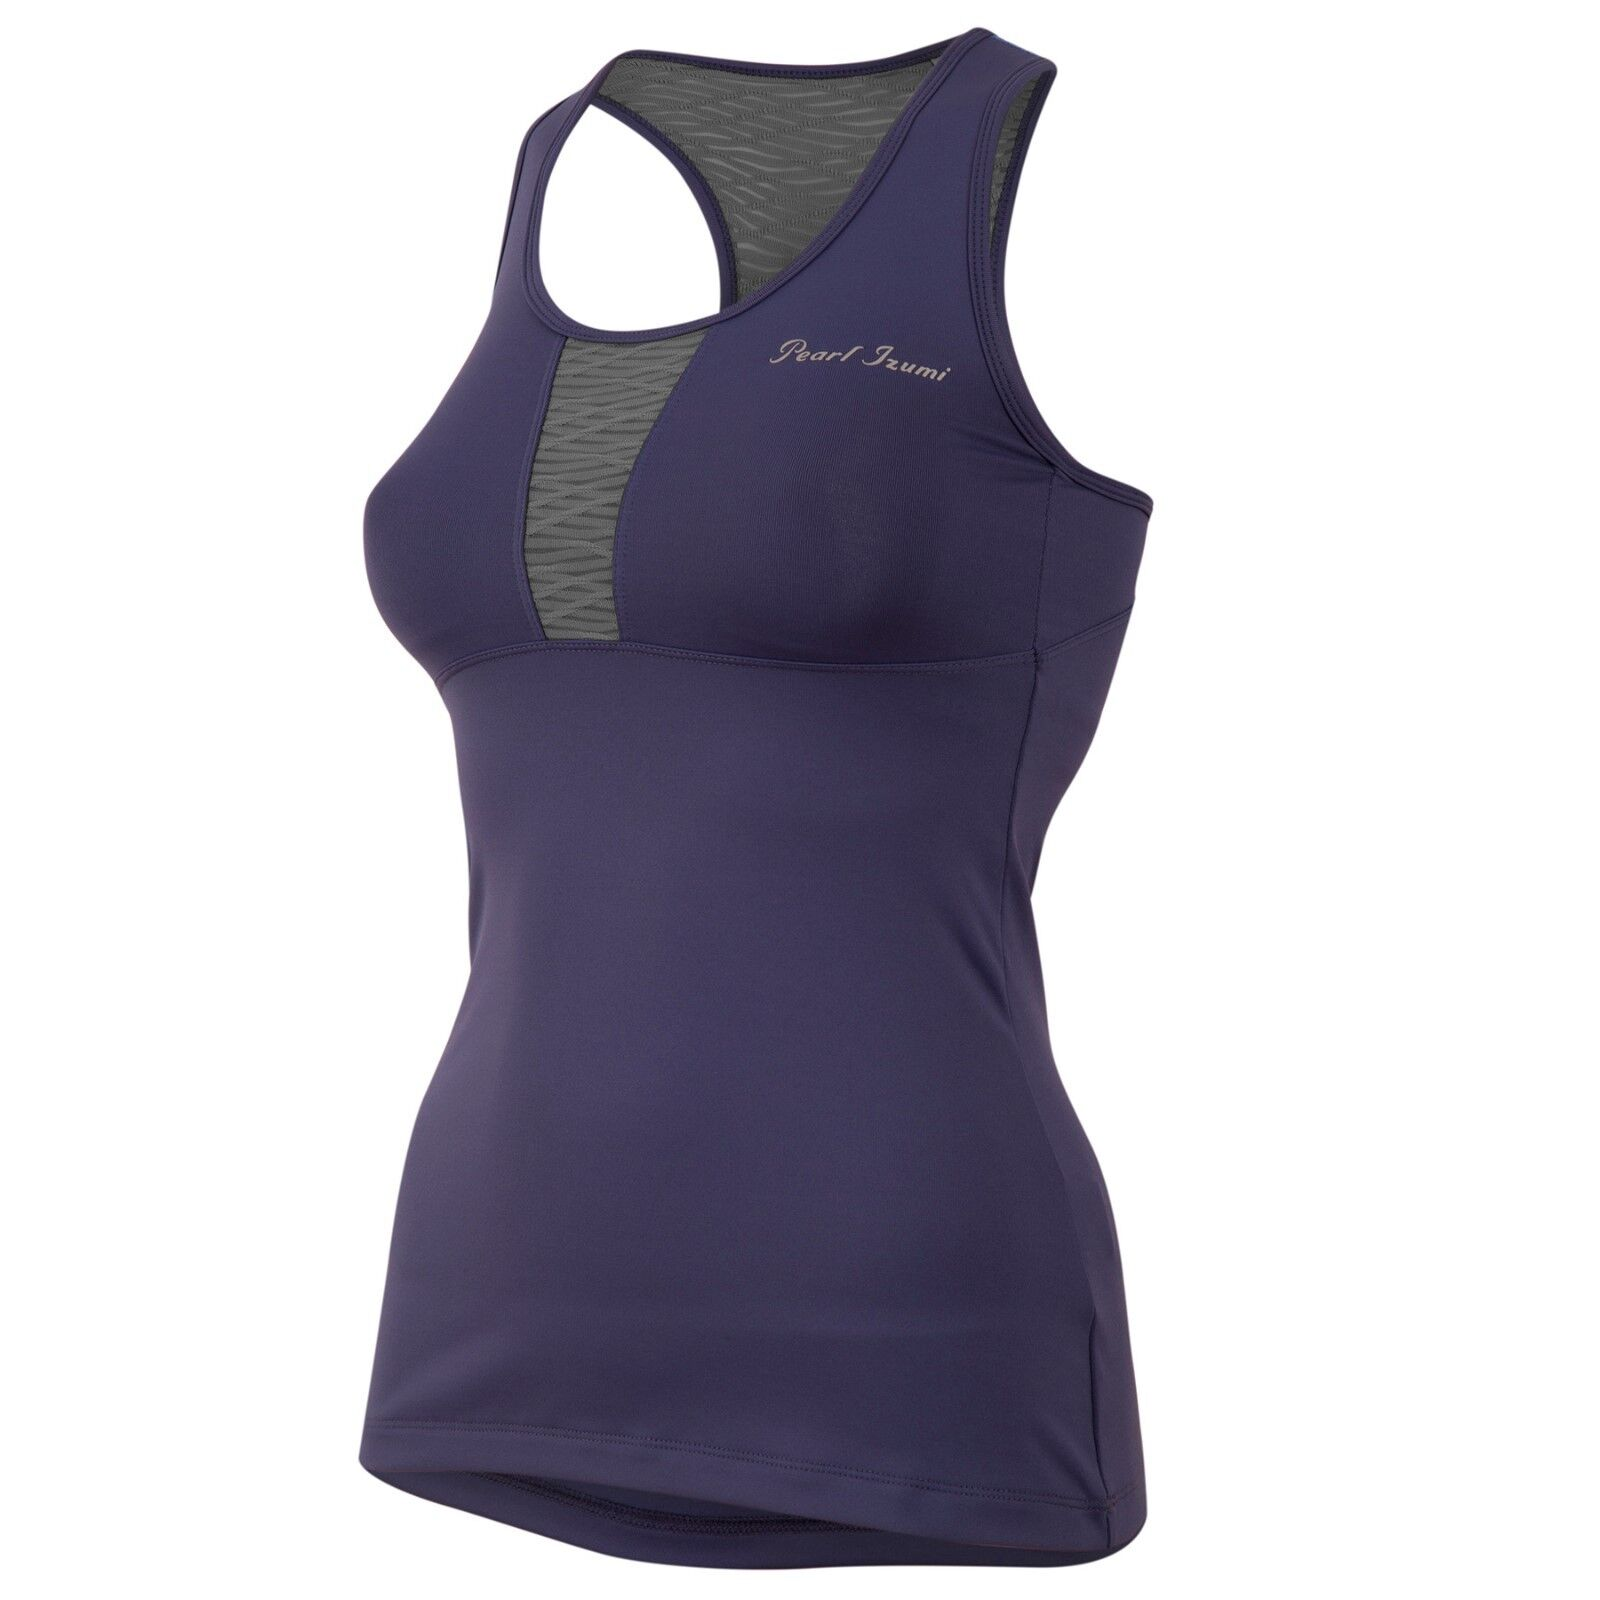 Pearl Izumi Womens Fly Sport Tank Shirt Purple Med  Fitness Running Cycling NEW  customers first